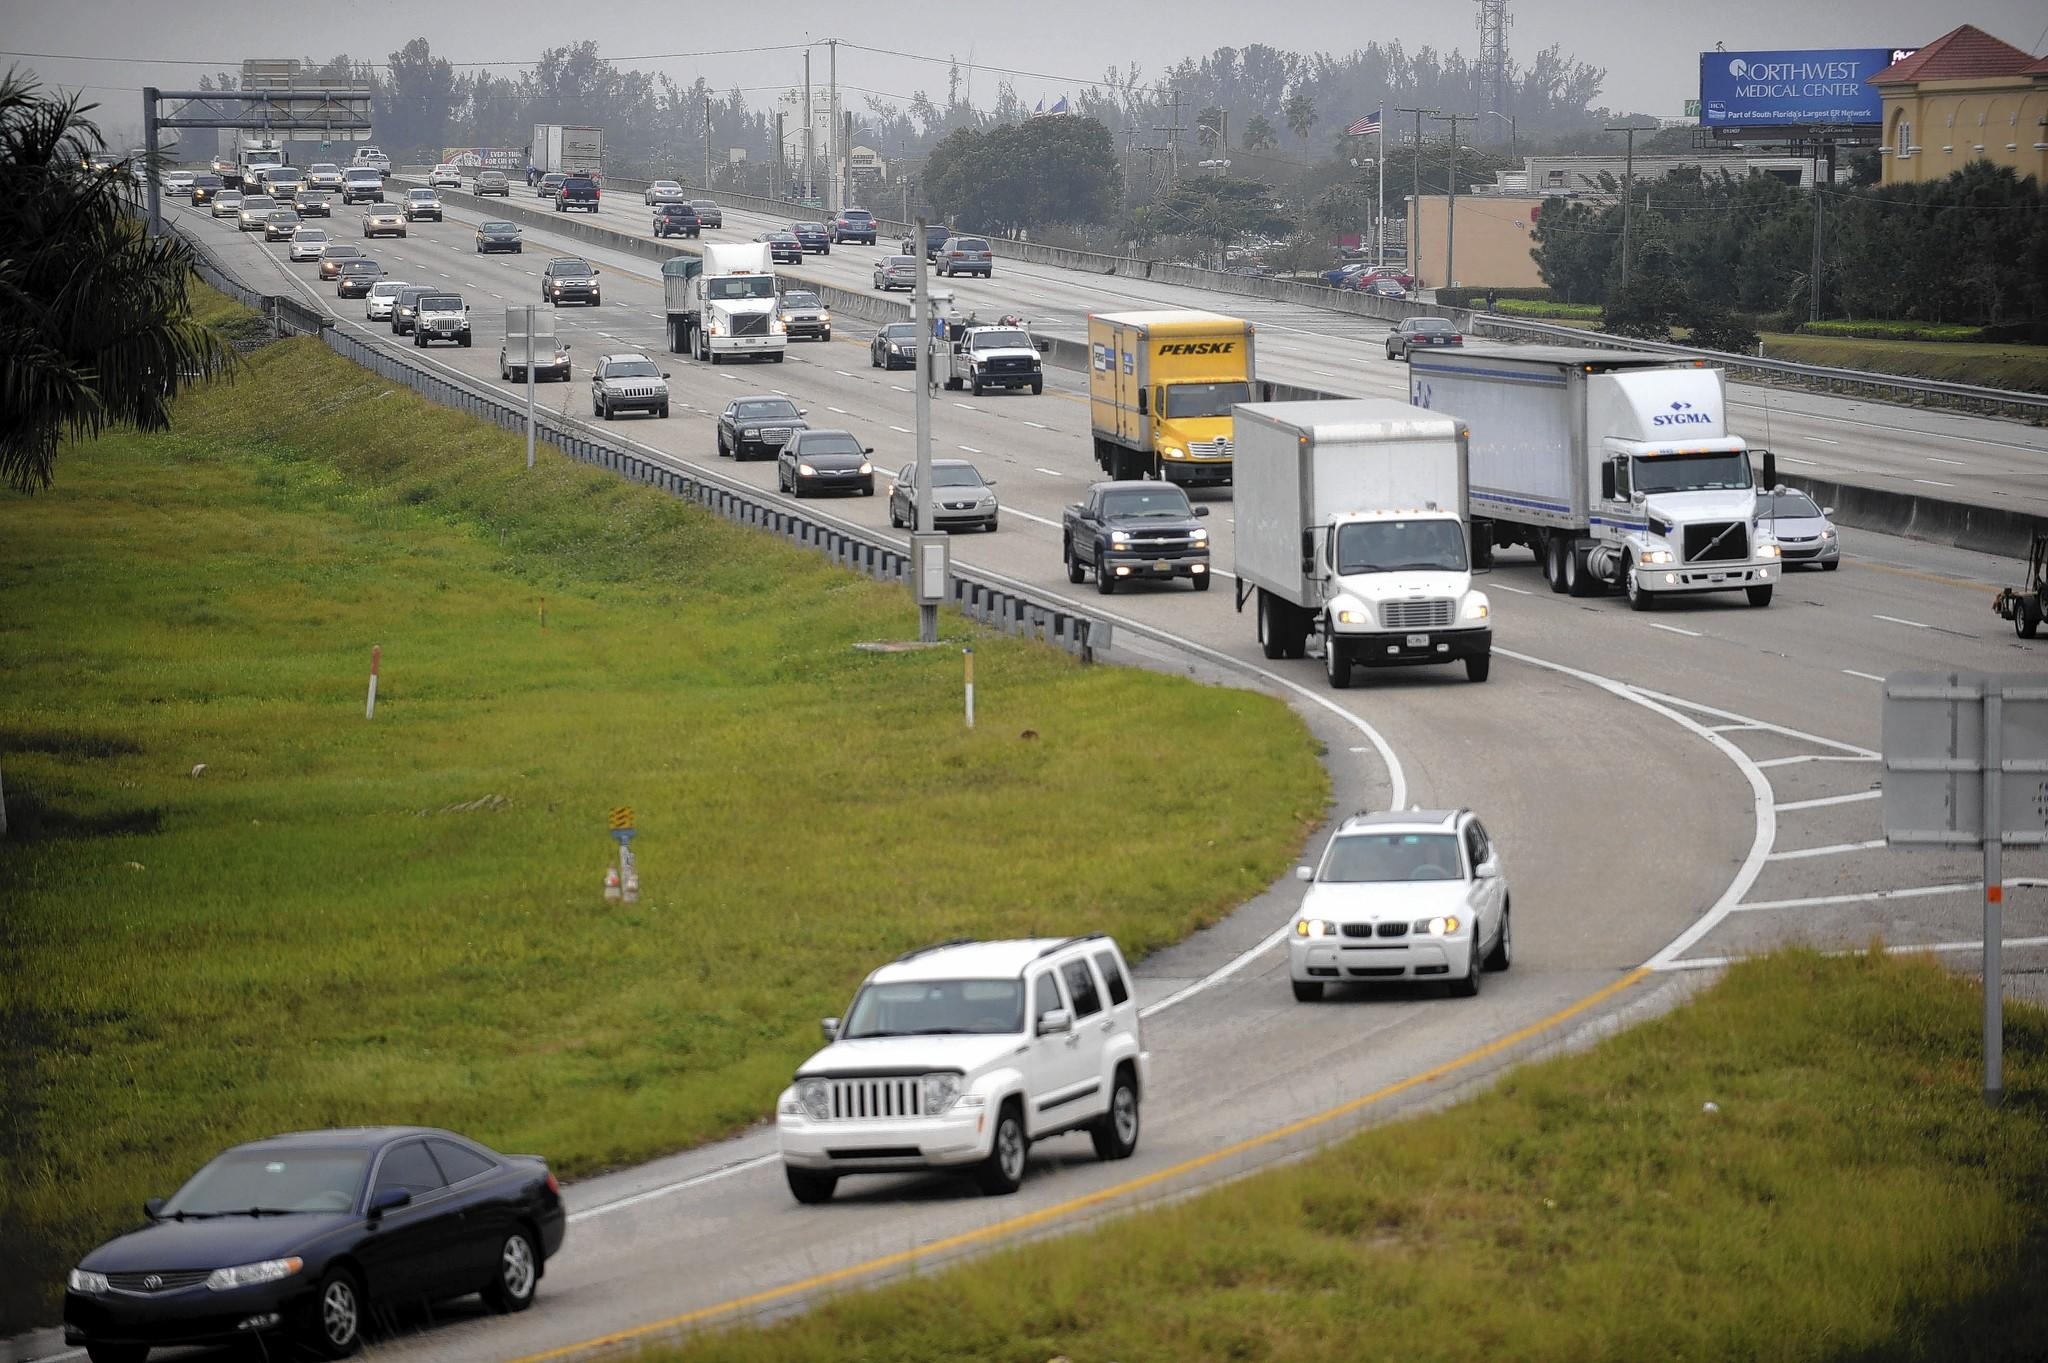 Both the county and Boca Raton are asking about a new interchange at Glades Rd. and the Turnpike to allevaite the interchange, but the turnpike and FDOT are looking at other ways to resolve issues at the intersection, including possibly a new ramp.